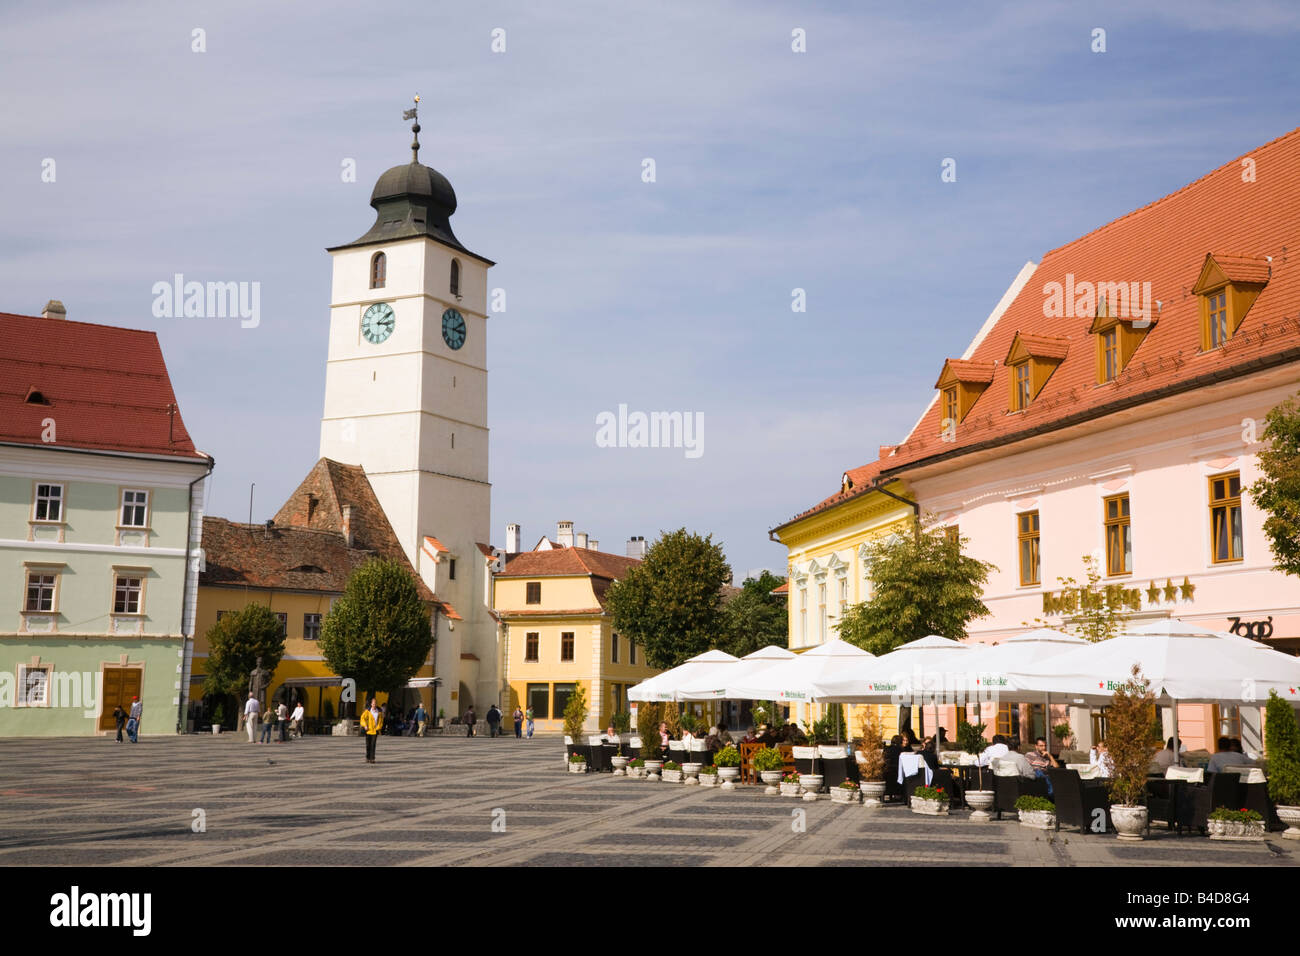 Sibiu Transylvania Romania Europe Old buildings and street cafe in Piata Mare in historic city centre of Hermannstadt - Stock Image